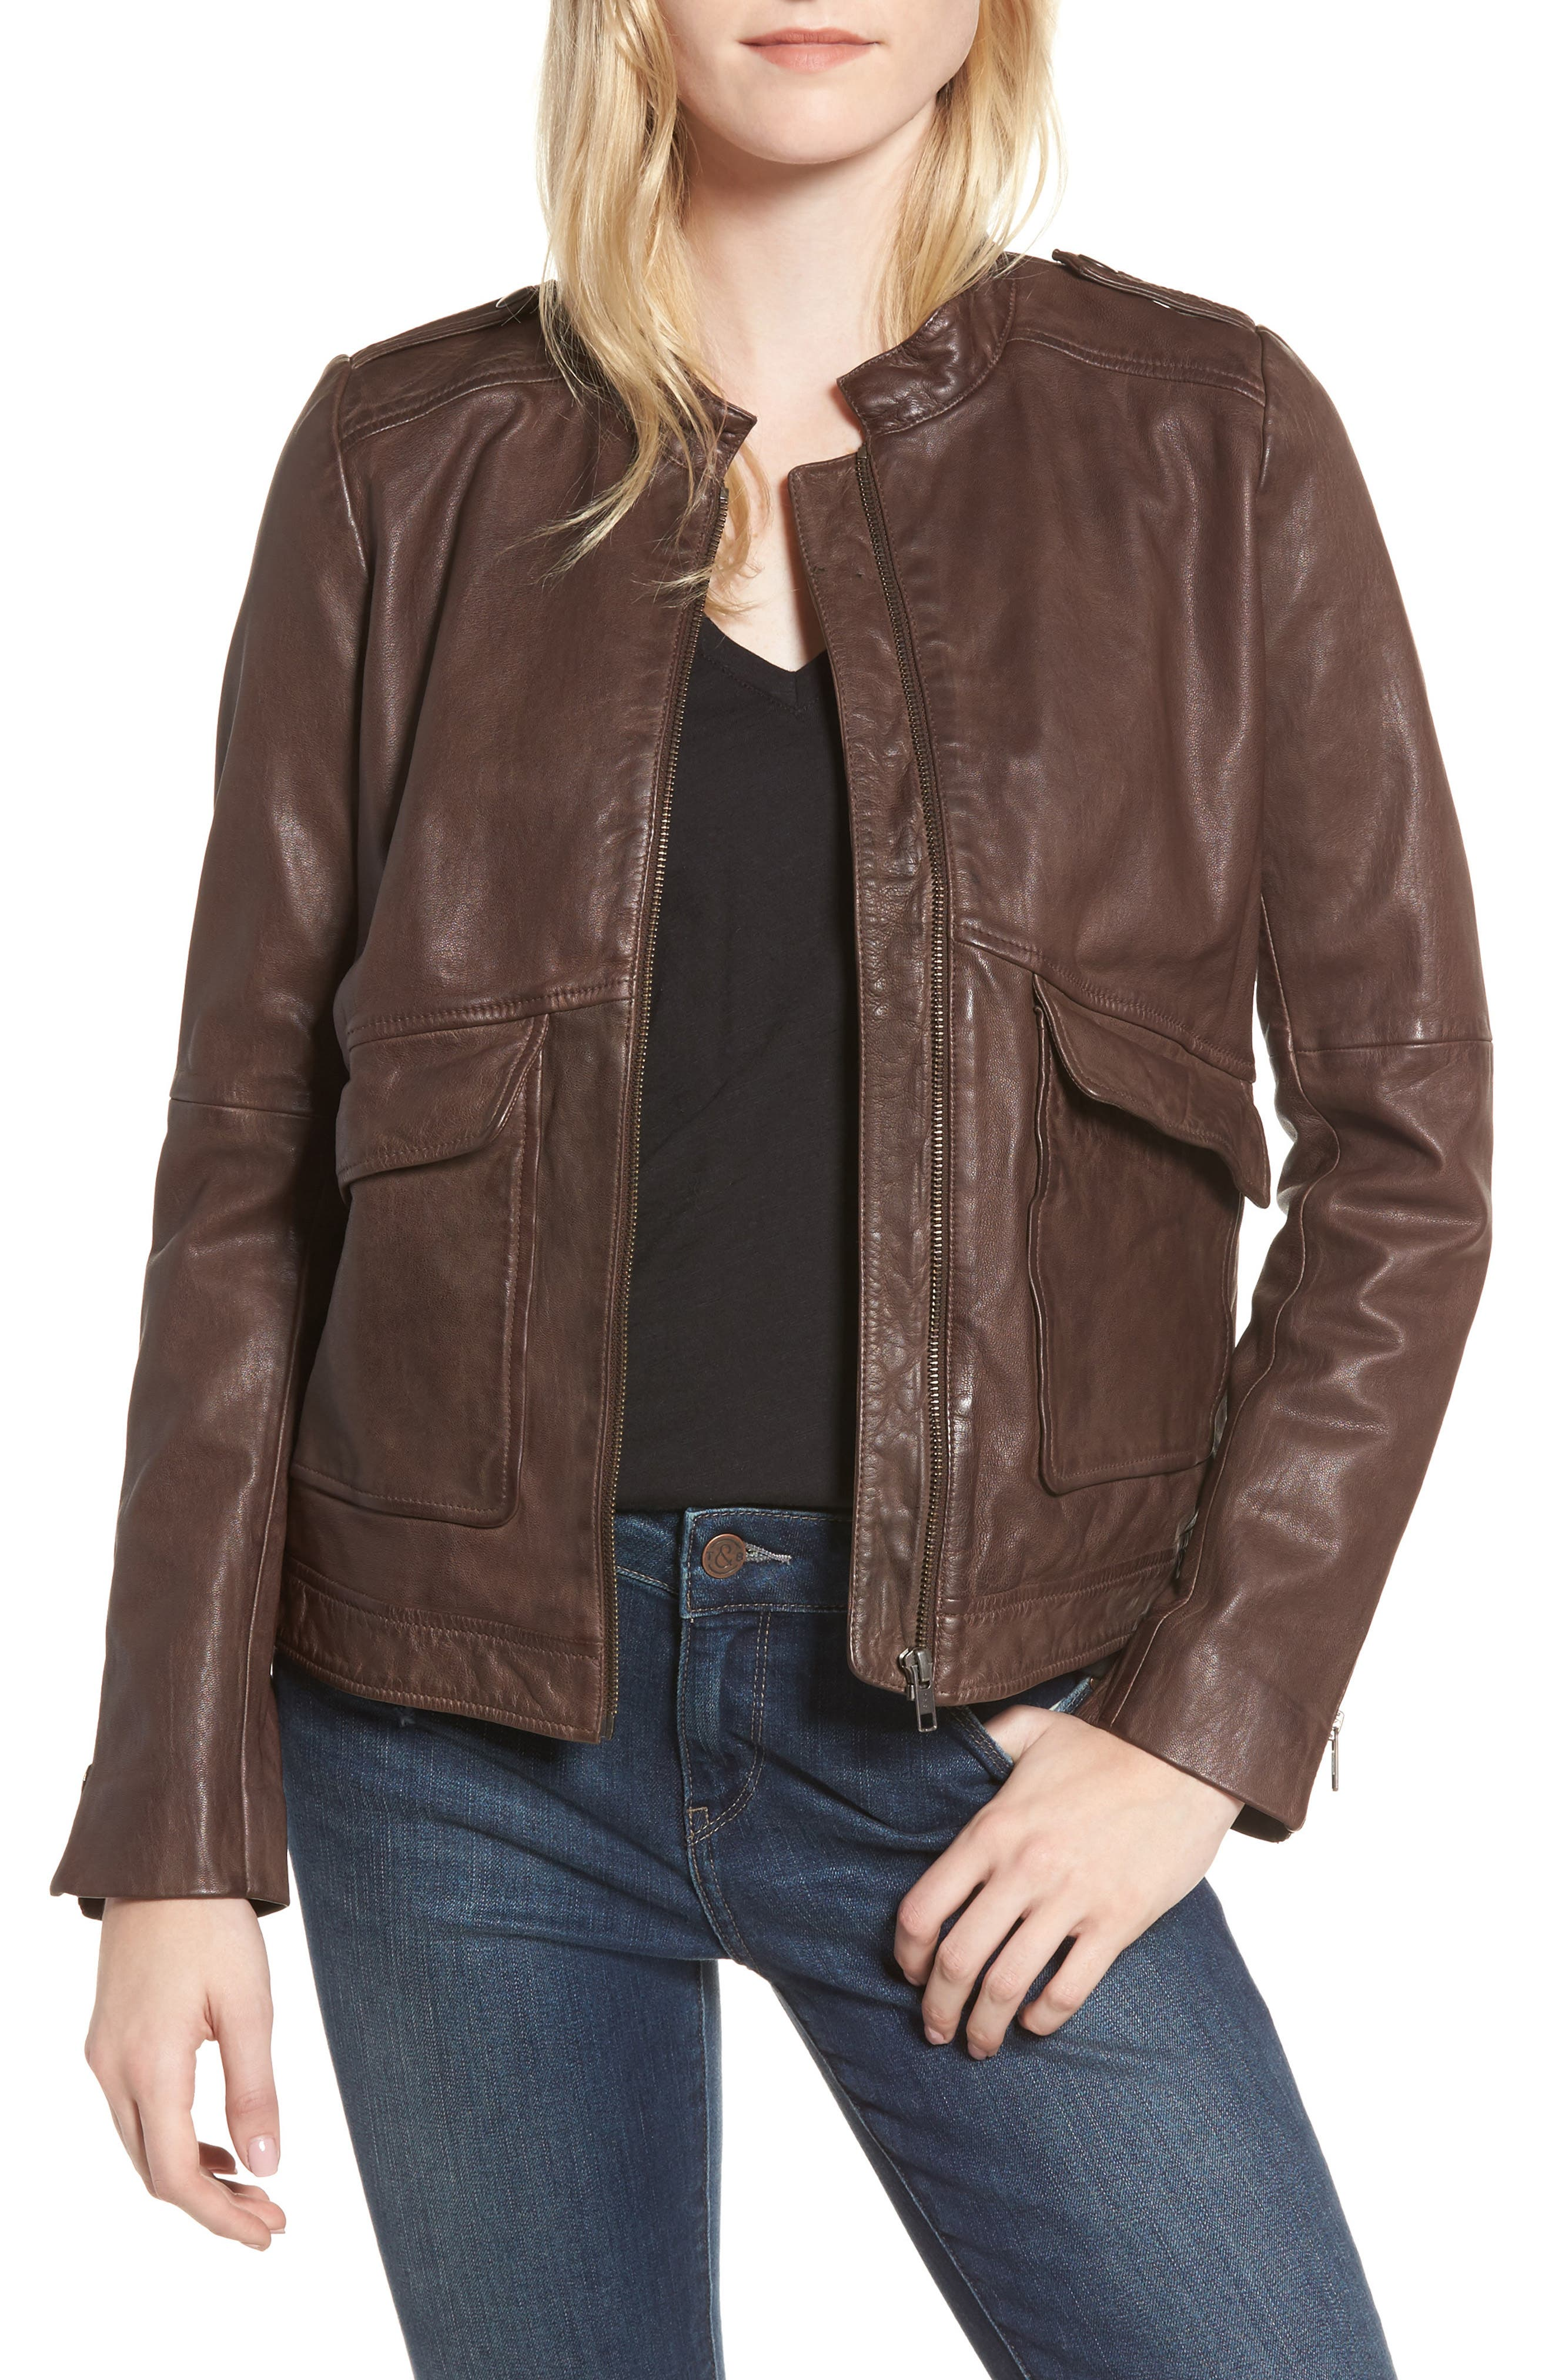 Alternate Image 1 Selected - Hinge Pocket Detail Leather Jacket